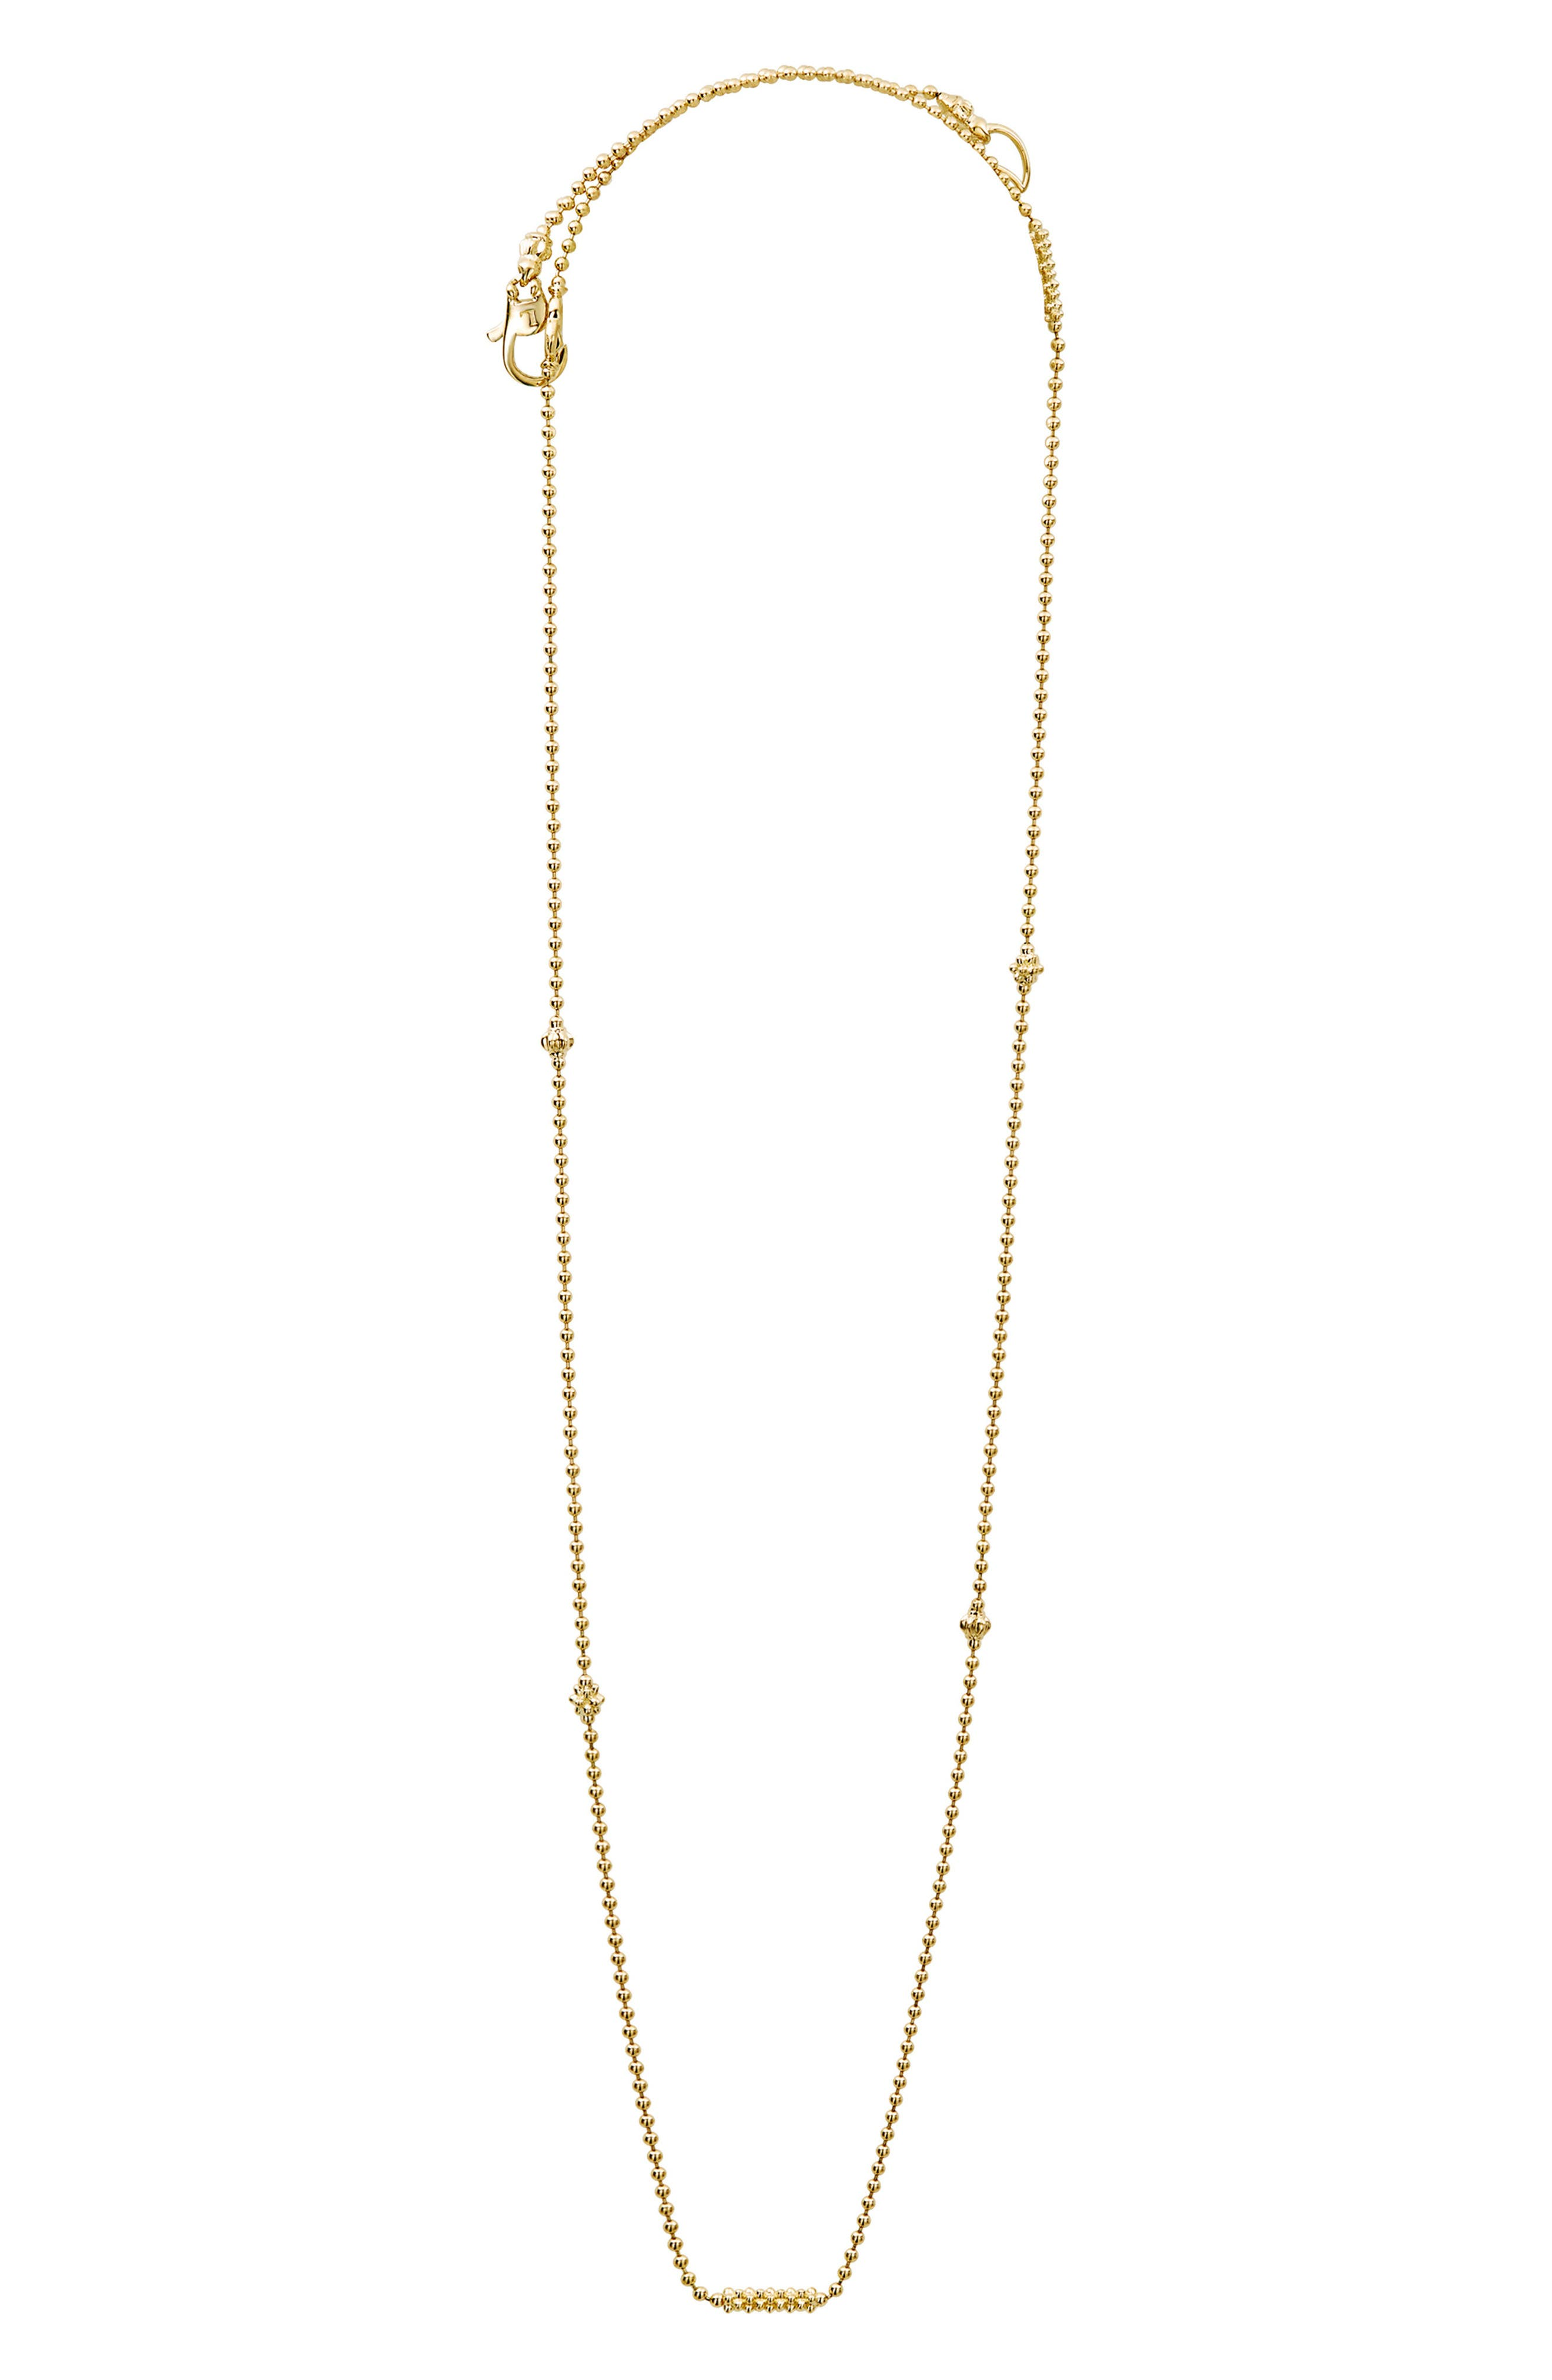 Caviar Bars & Cages Chain Necklace,                         Main,                         color, Gold